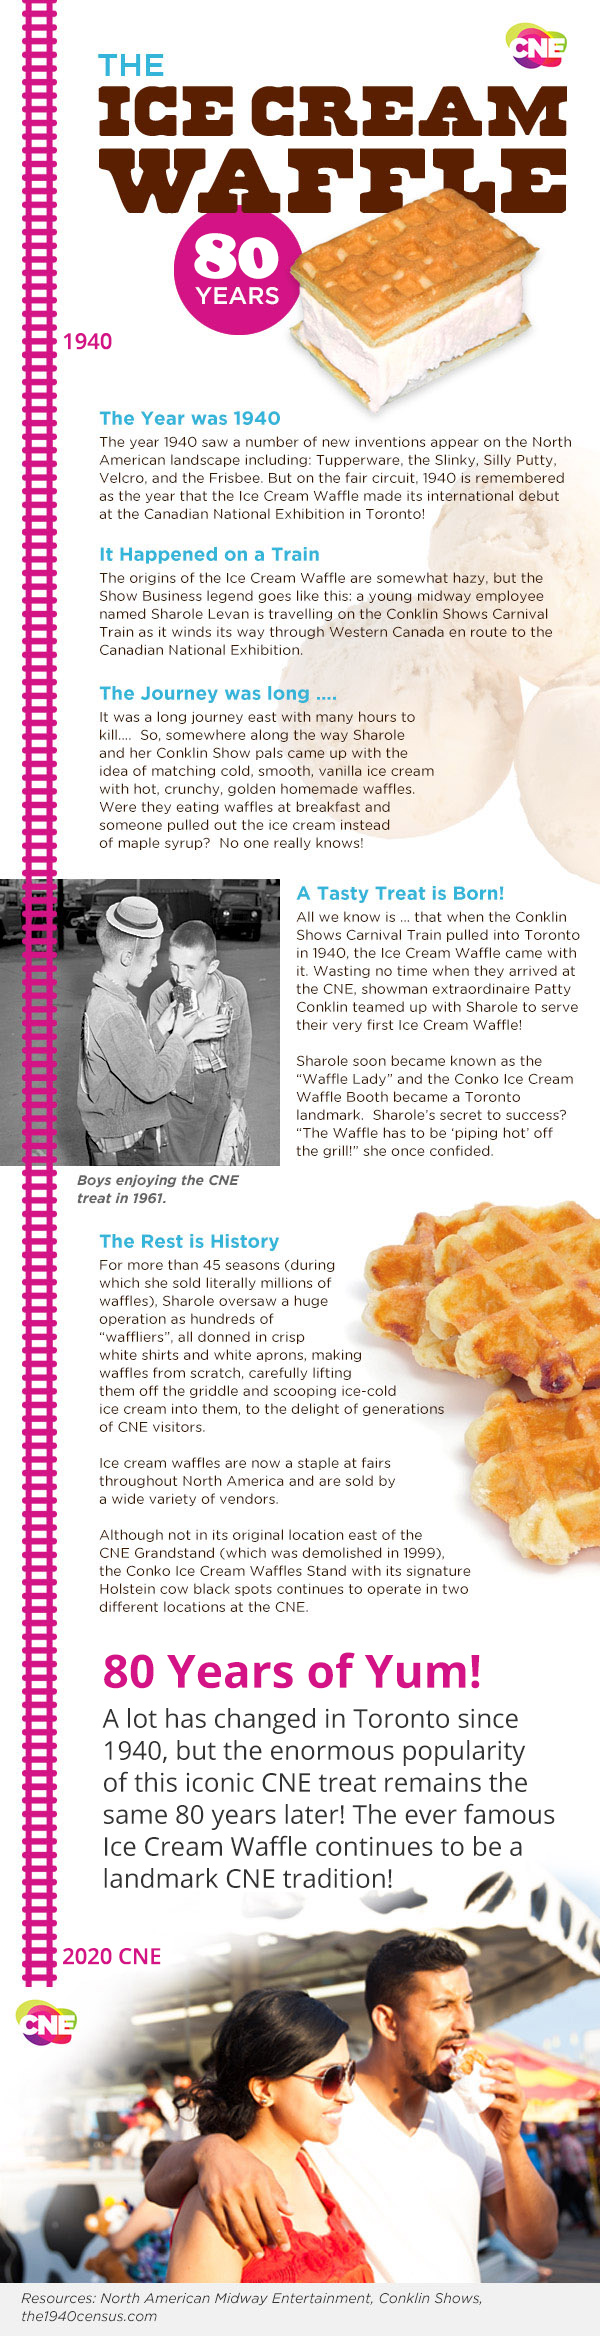 The Ice Cream Waffle - 80 Years